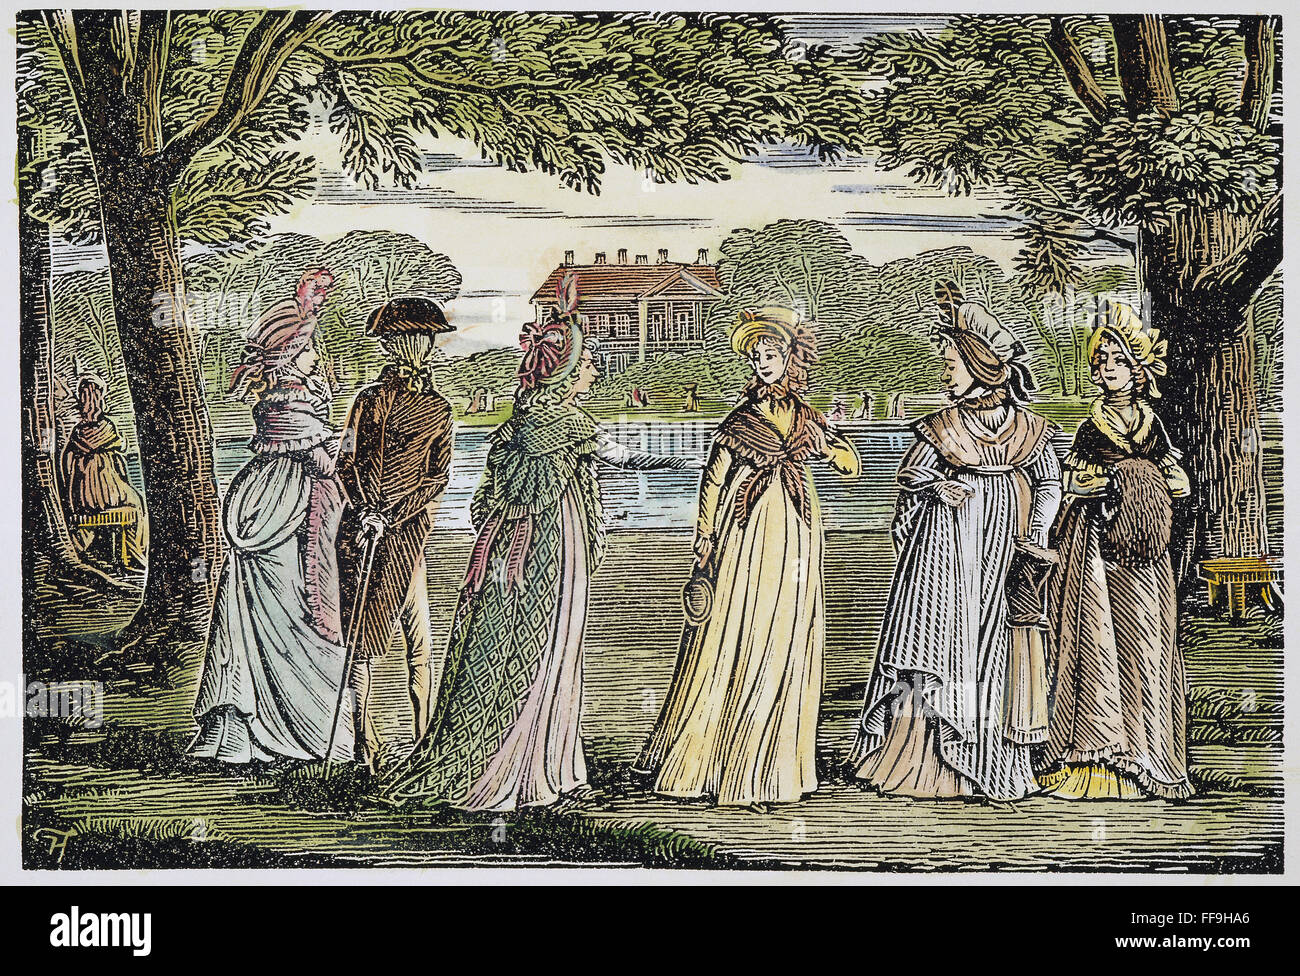 development of major characters in jane austens sense and sensibility Book review 1 development of major characters sense and sensibility the first  of jane austen's published novels, sense and sensibility, portrays the life and.